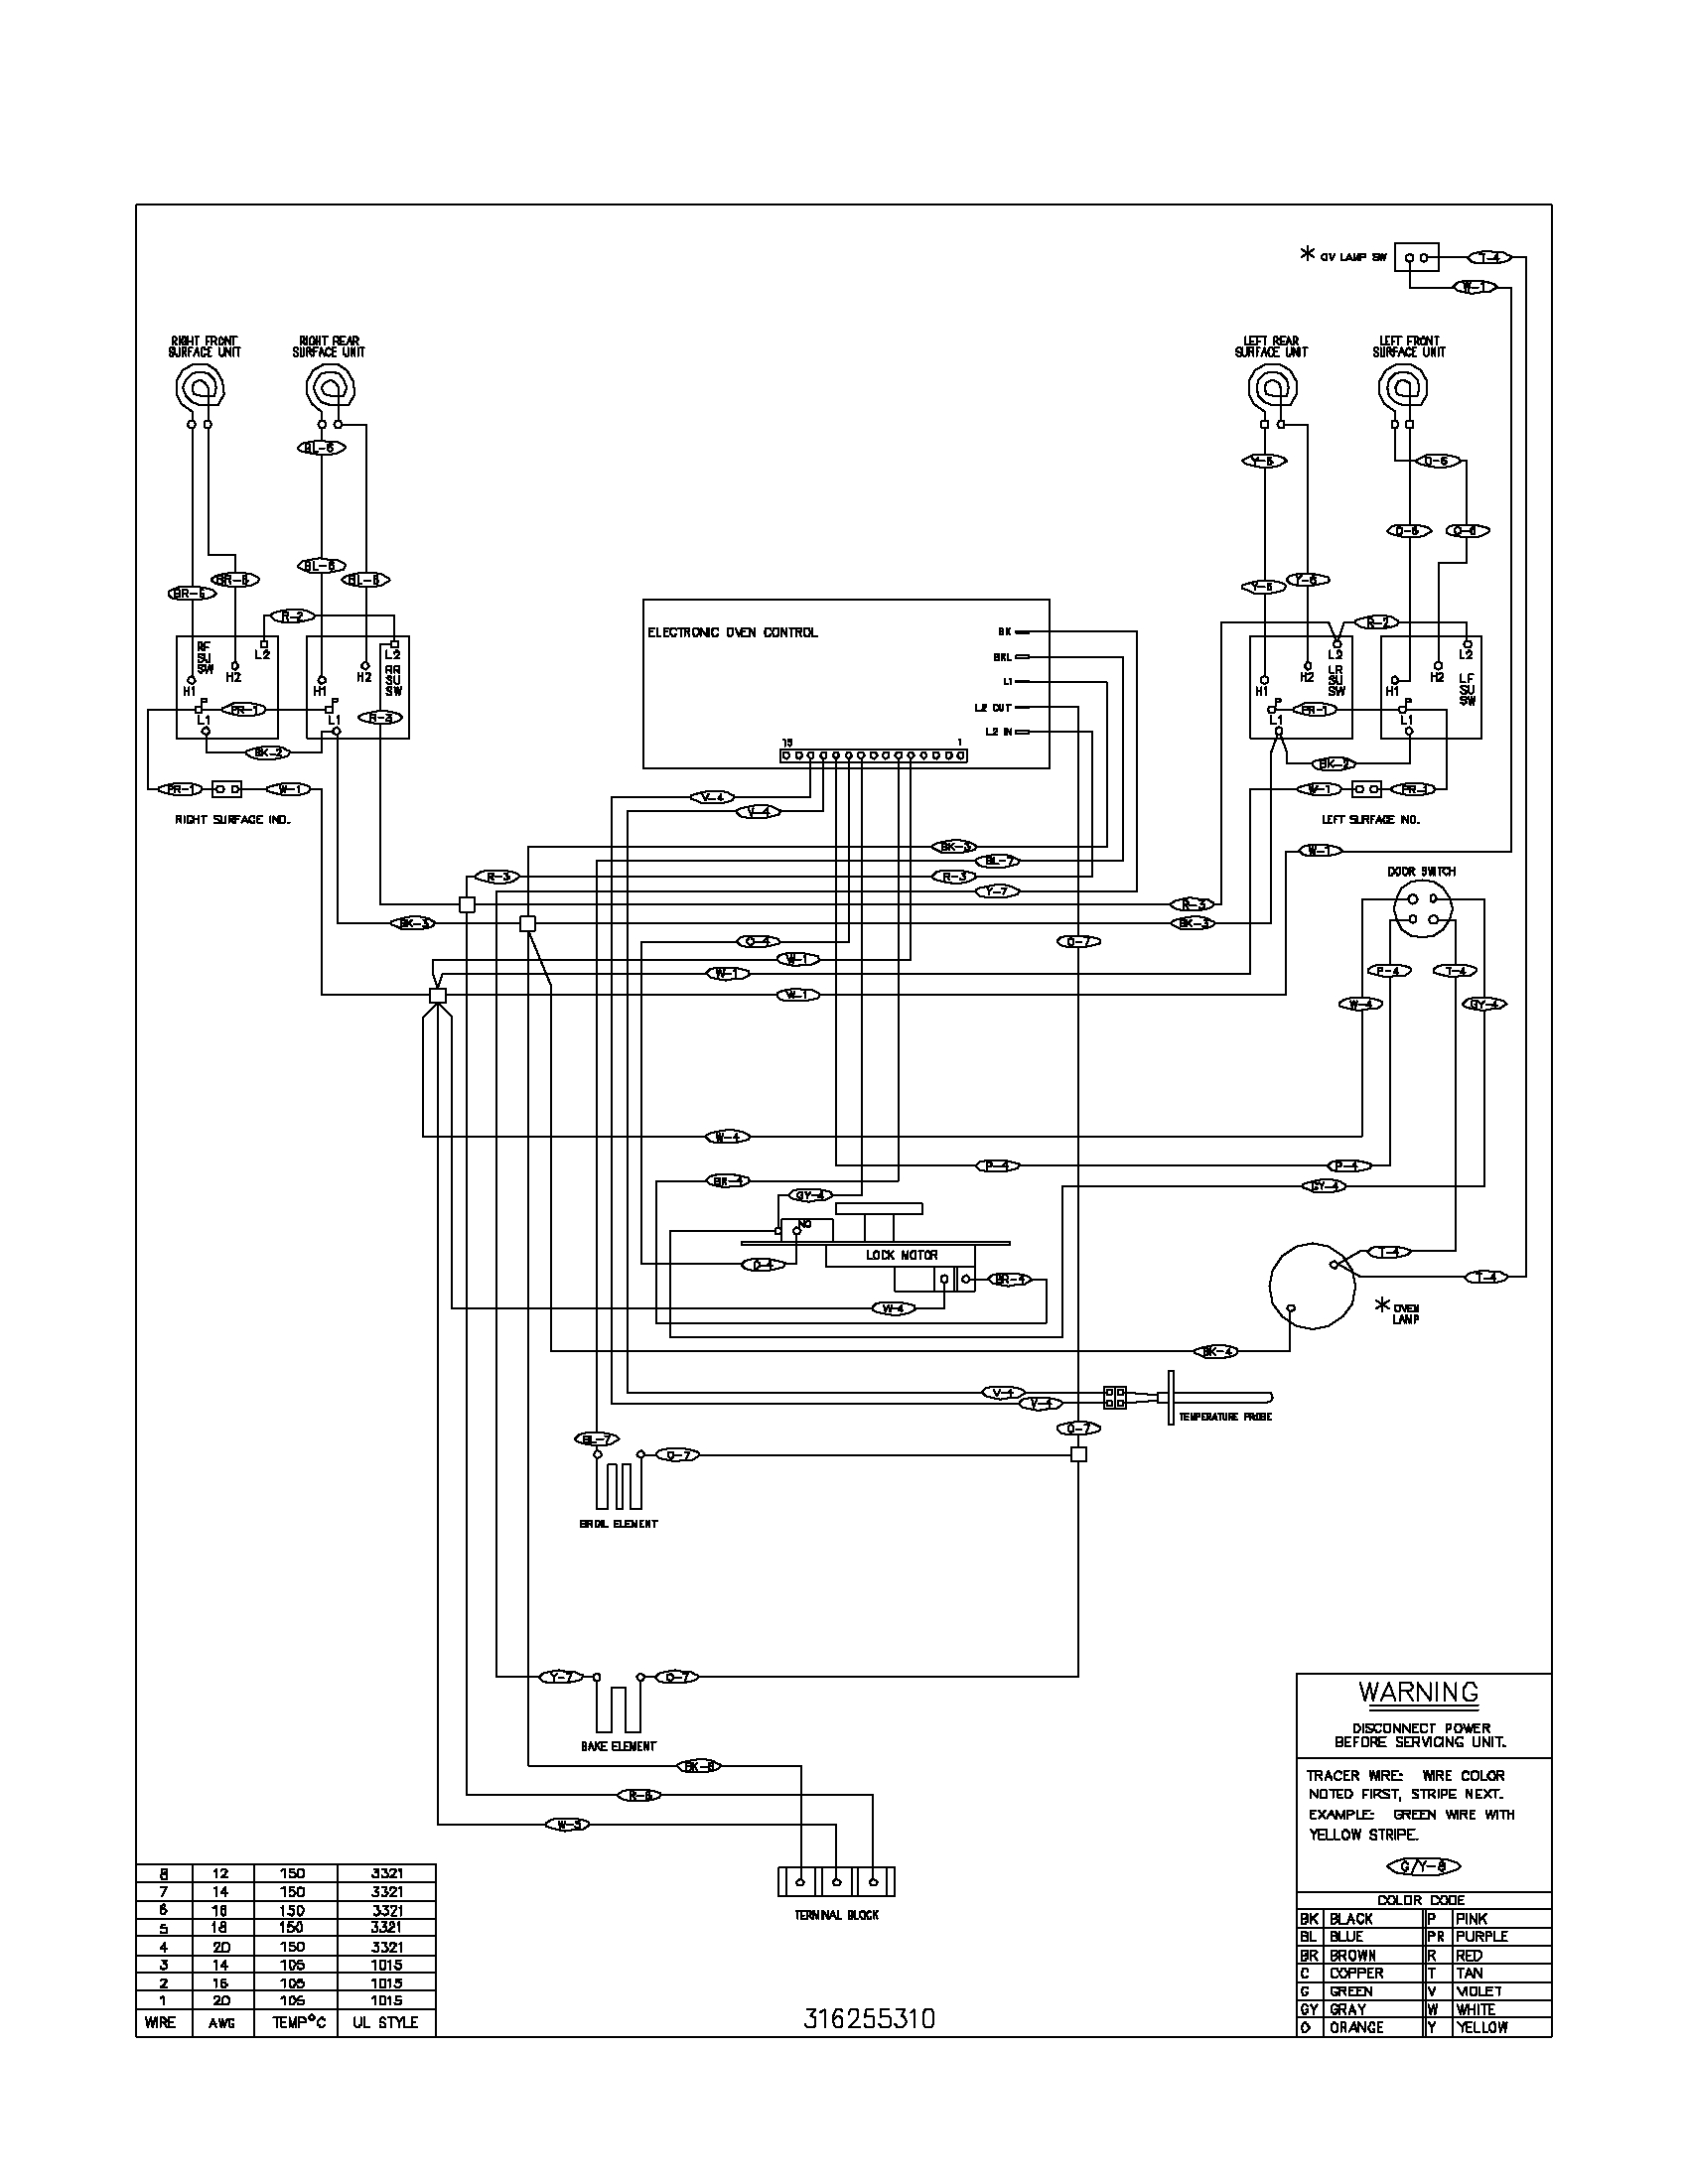 Ge Electric Stove Wiring Diagrams | Wiring Diagram - Electric Stove Wiring Diagram